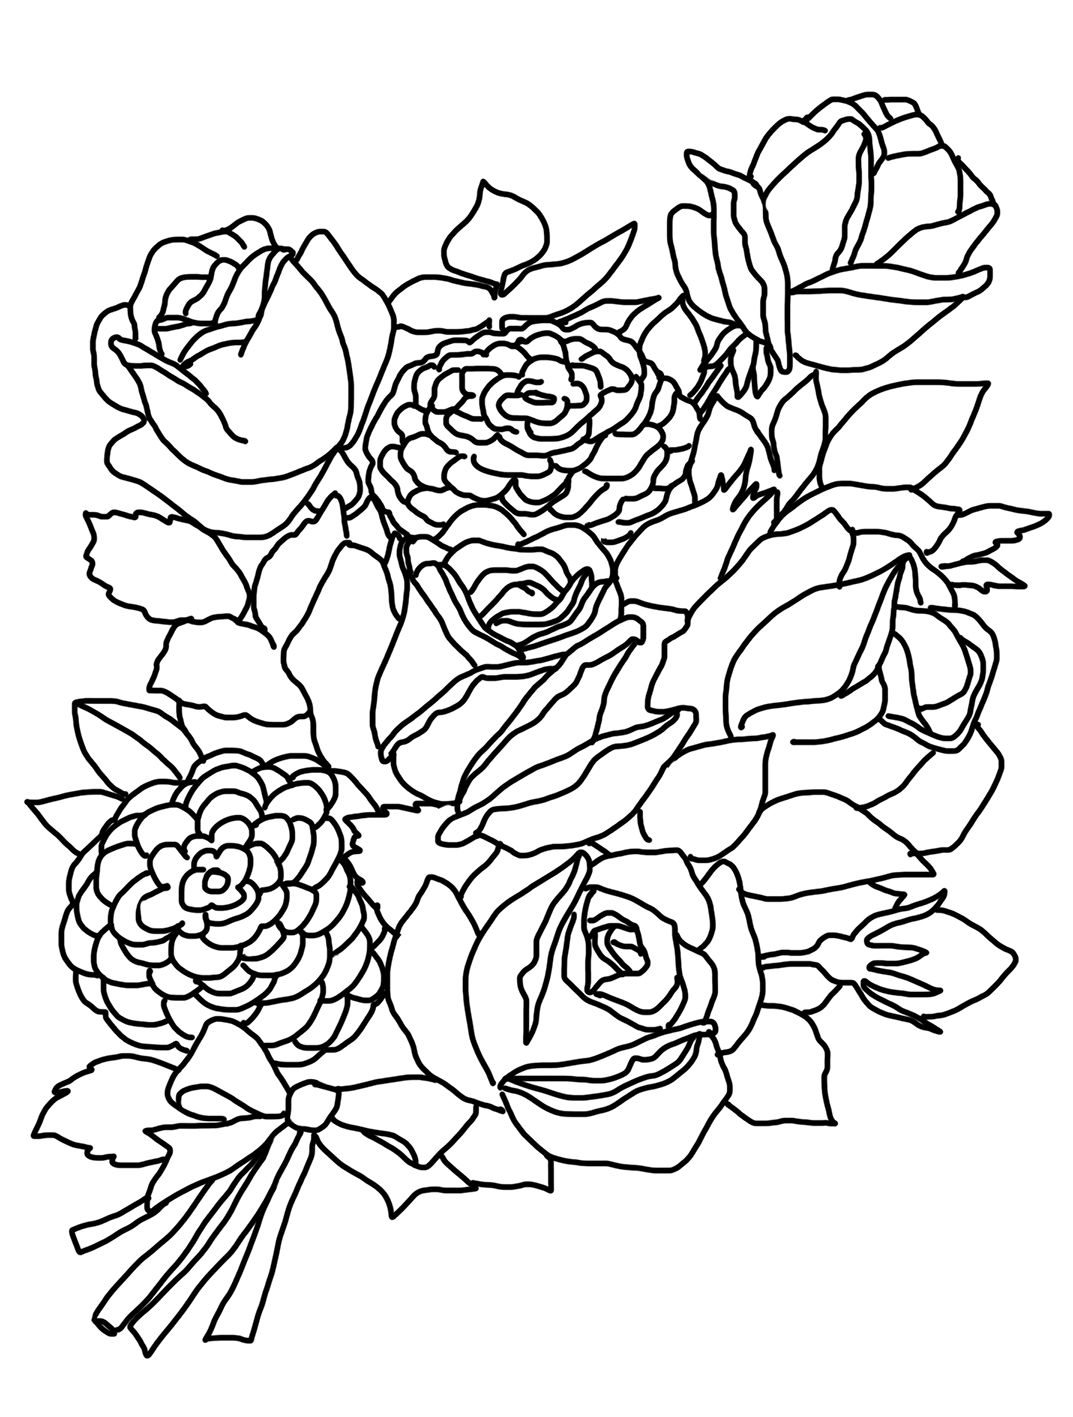 coloring pages with flowers-#8